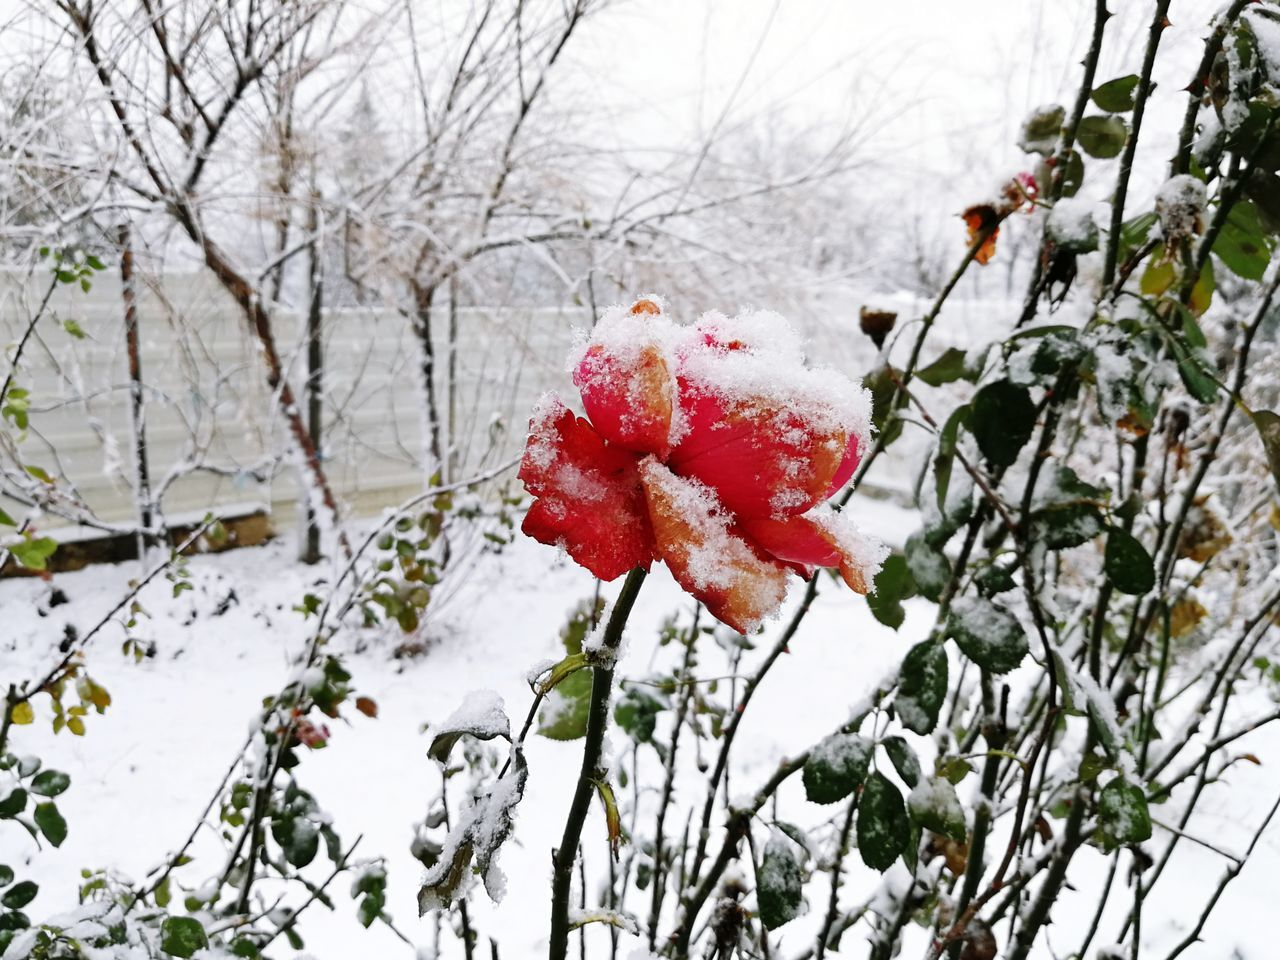 Red Rose Frozen Flower Frozen Rose Winter Winter In The Garden Snow Snowing Winter Snow Cold Temperature Red Nature Branch Tree